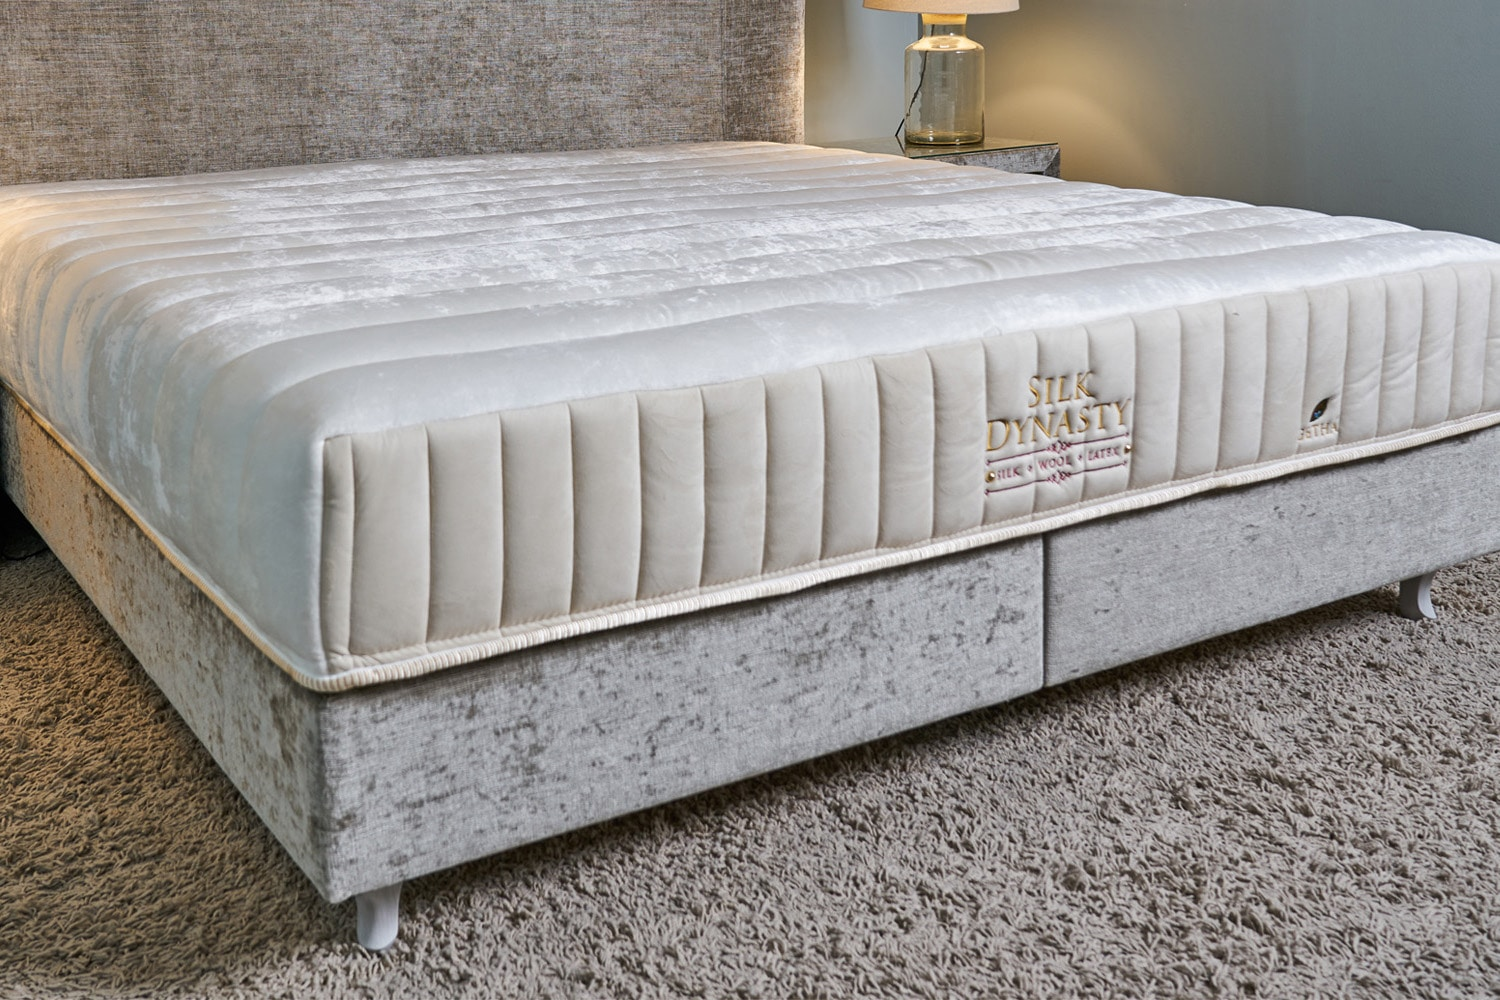 getha mattress silk dynasty Home Minimalism